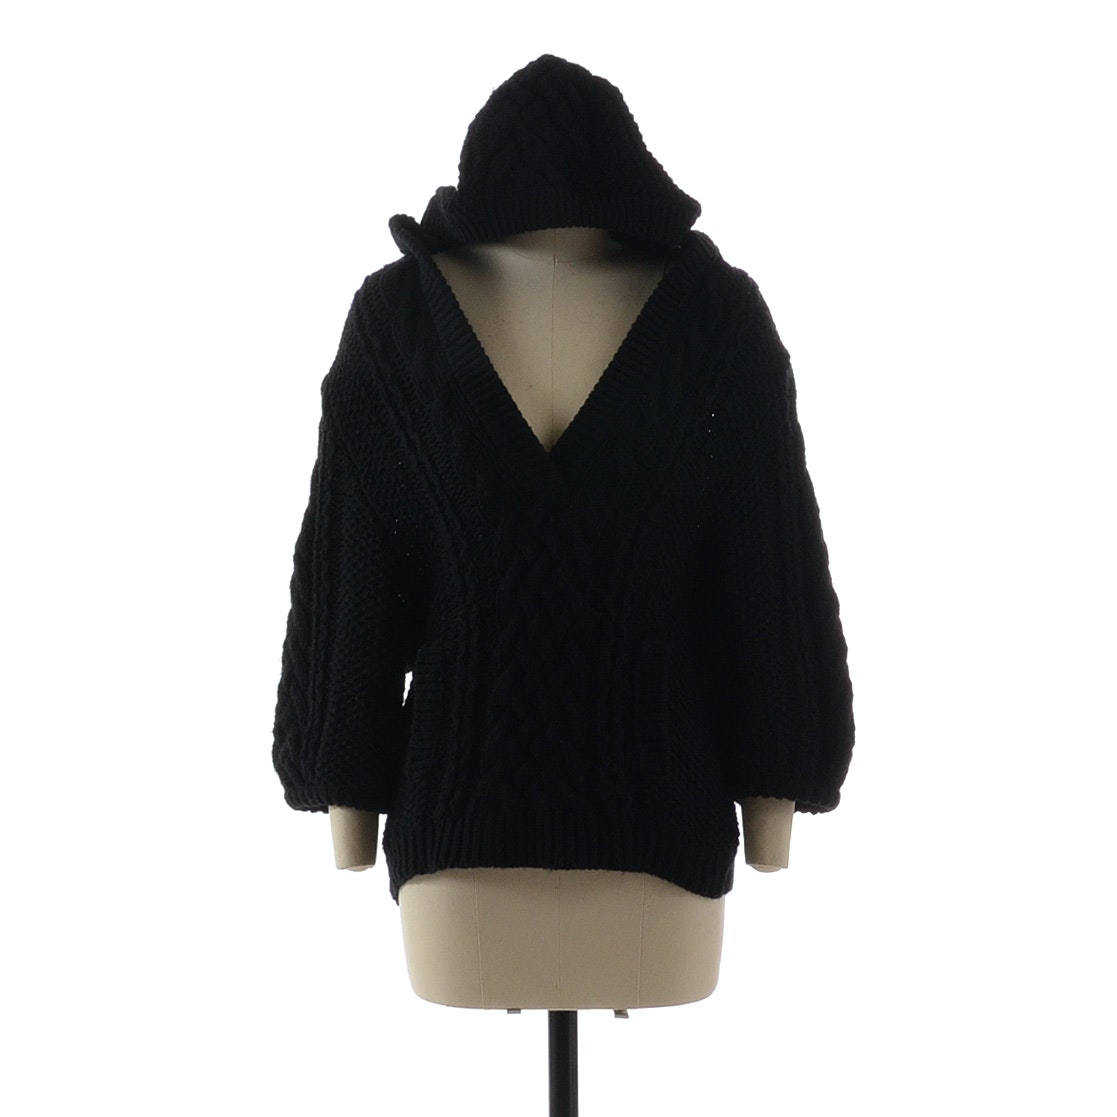 Magaschoni Black Knit Sweater with Hoodie